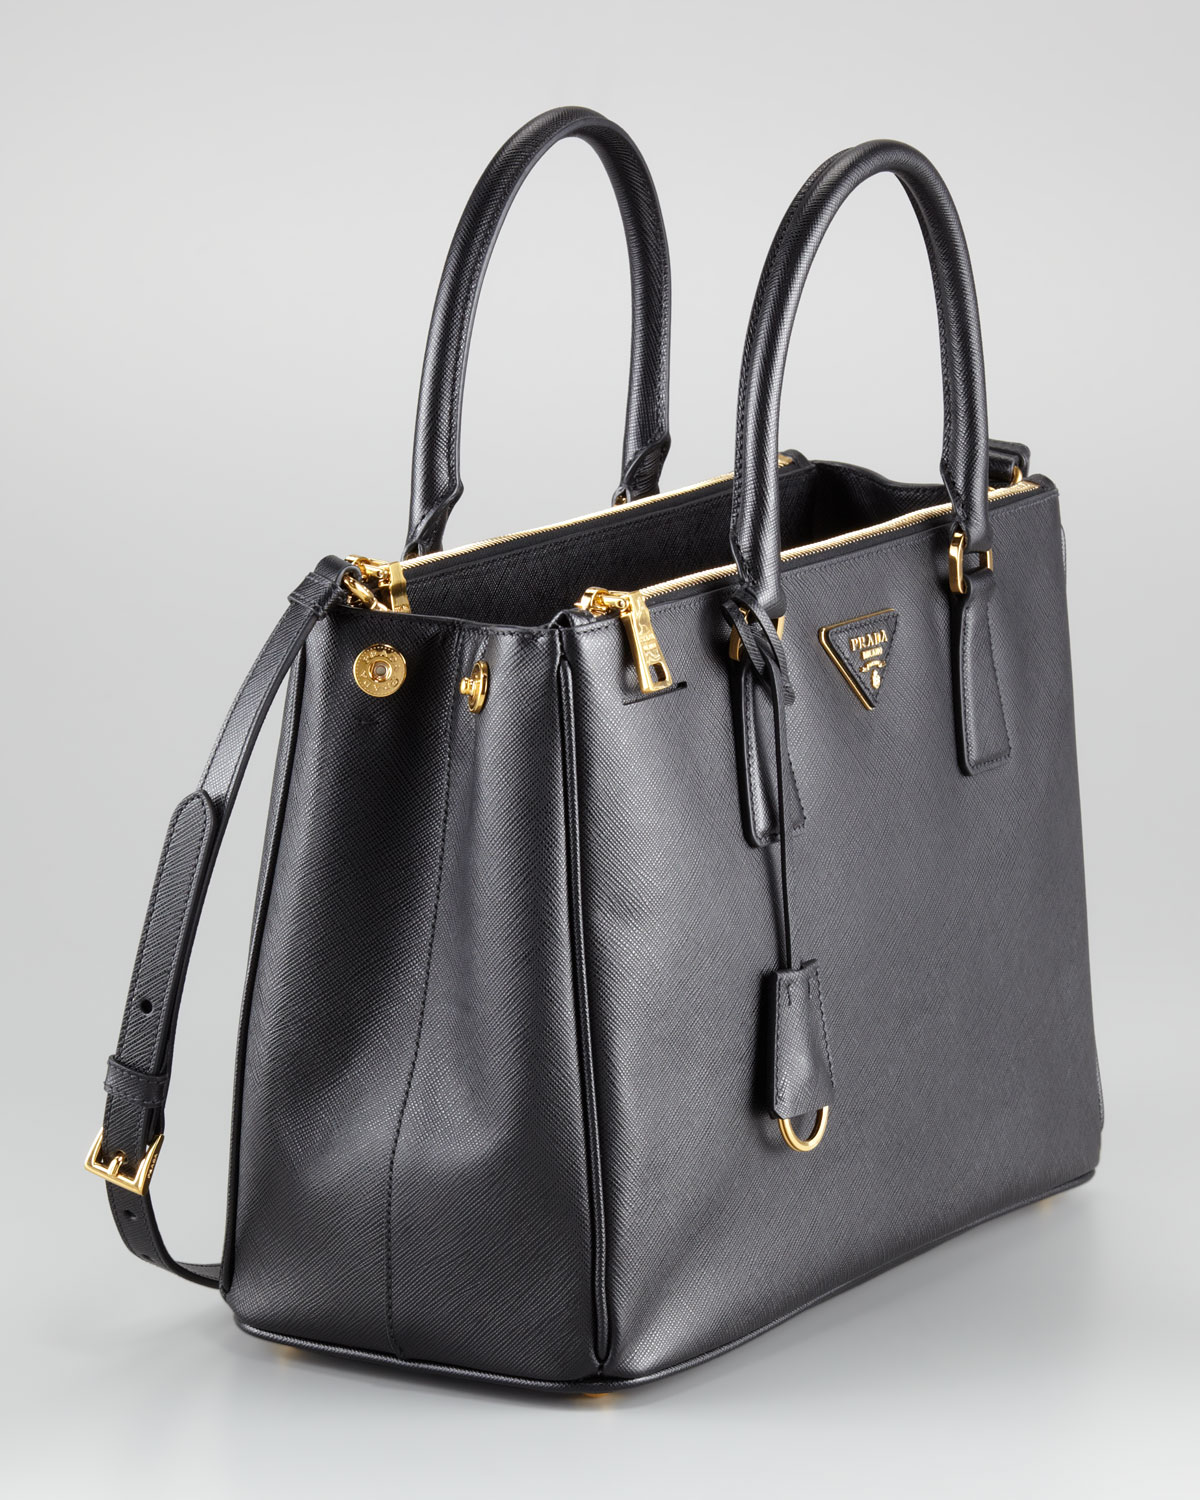 2b92c771fe0011 ... coupon code for lyst prada saffiano small executive tote in black 3c848  9a9c8